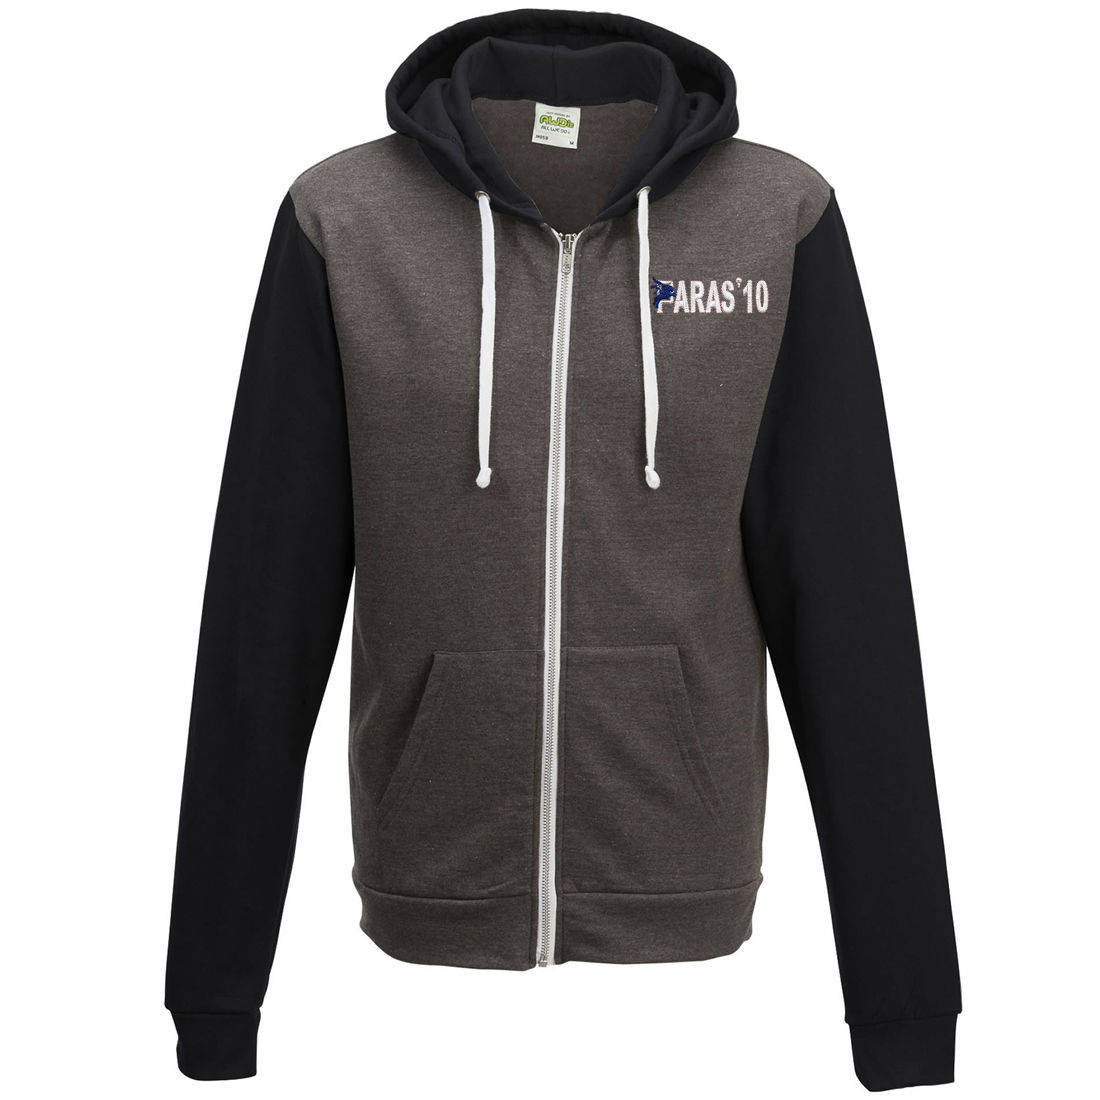 Two-Tone Zip Up Hoody